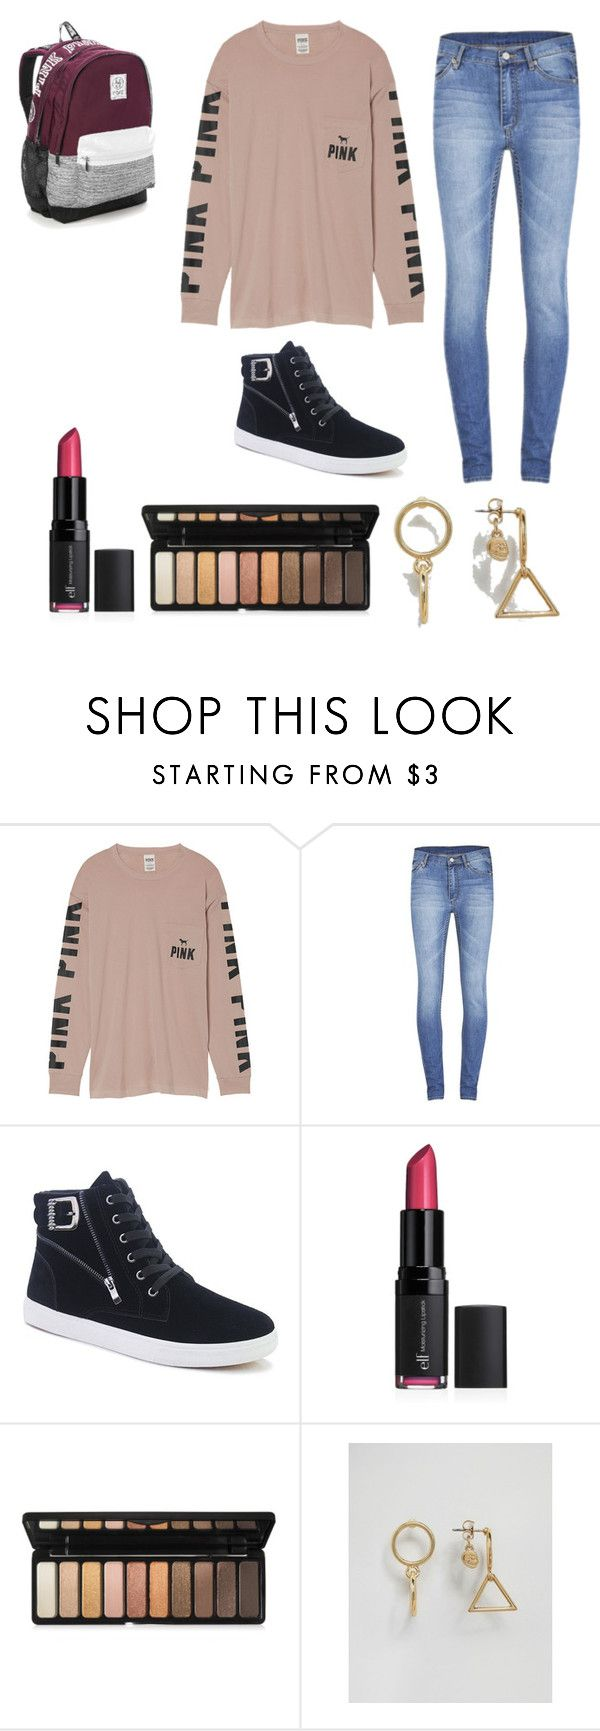 """#PINK (teen) middle school outfit"" by hannahandmaya03 on Polyvore featuring Victoria's Secret and Cheap Monday"